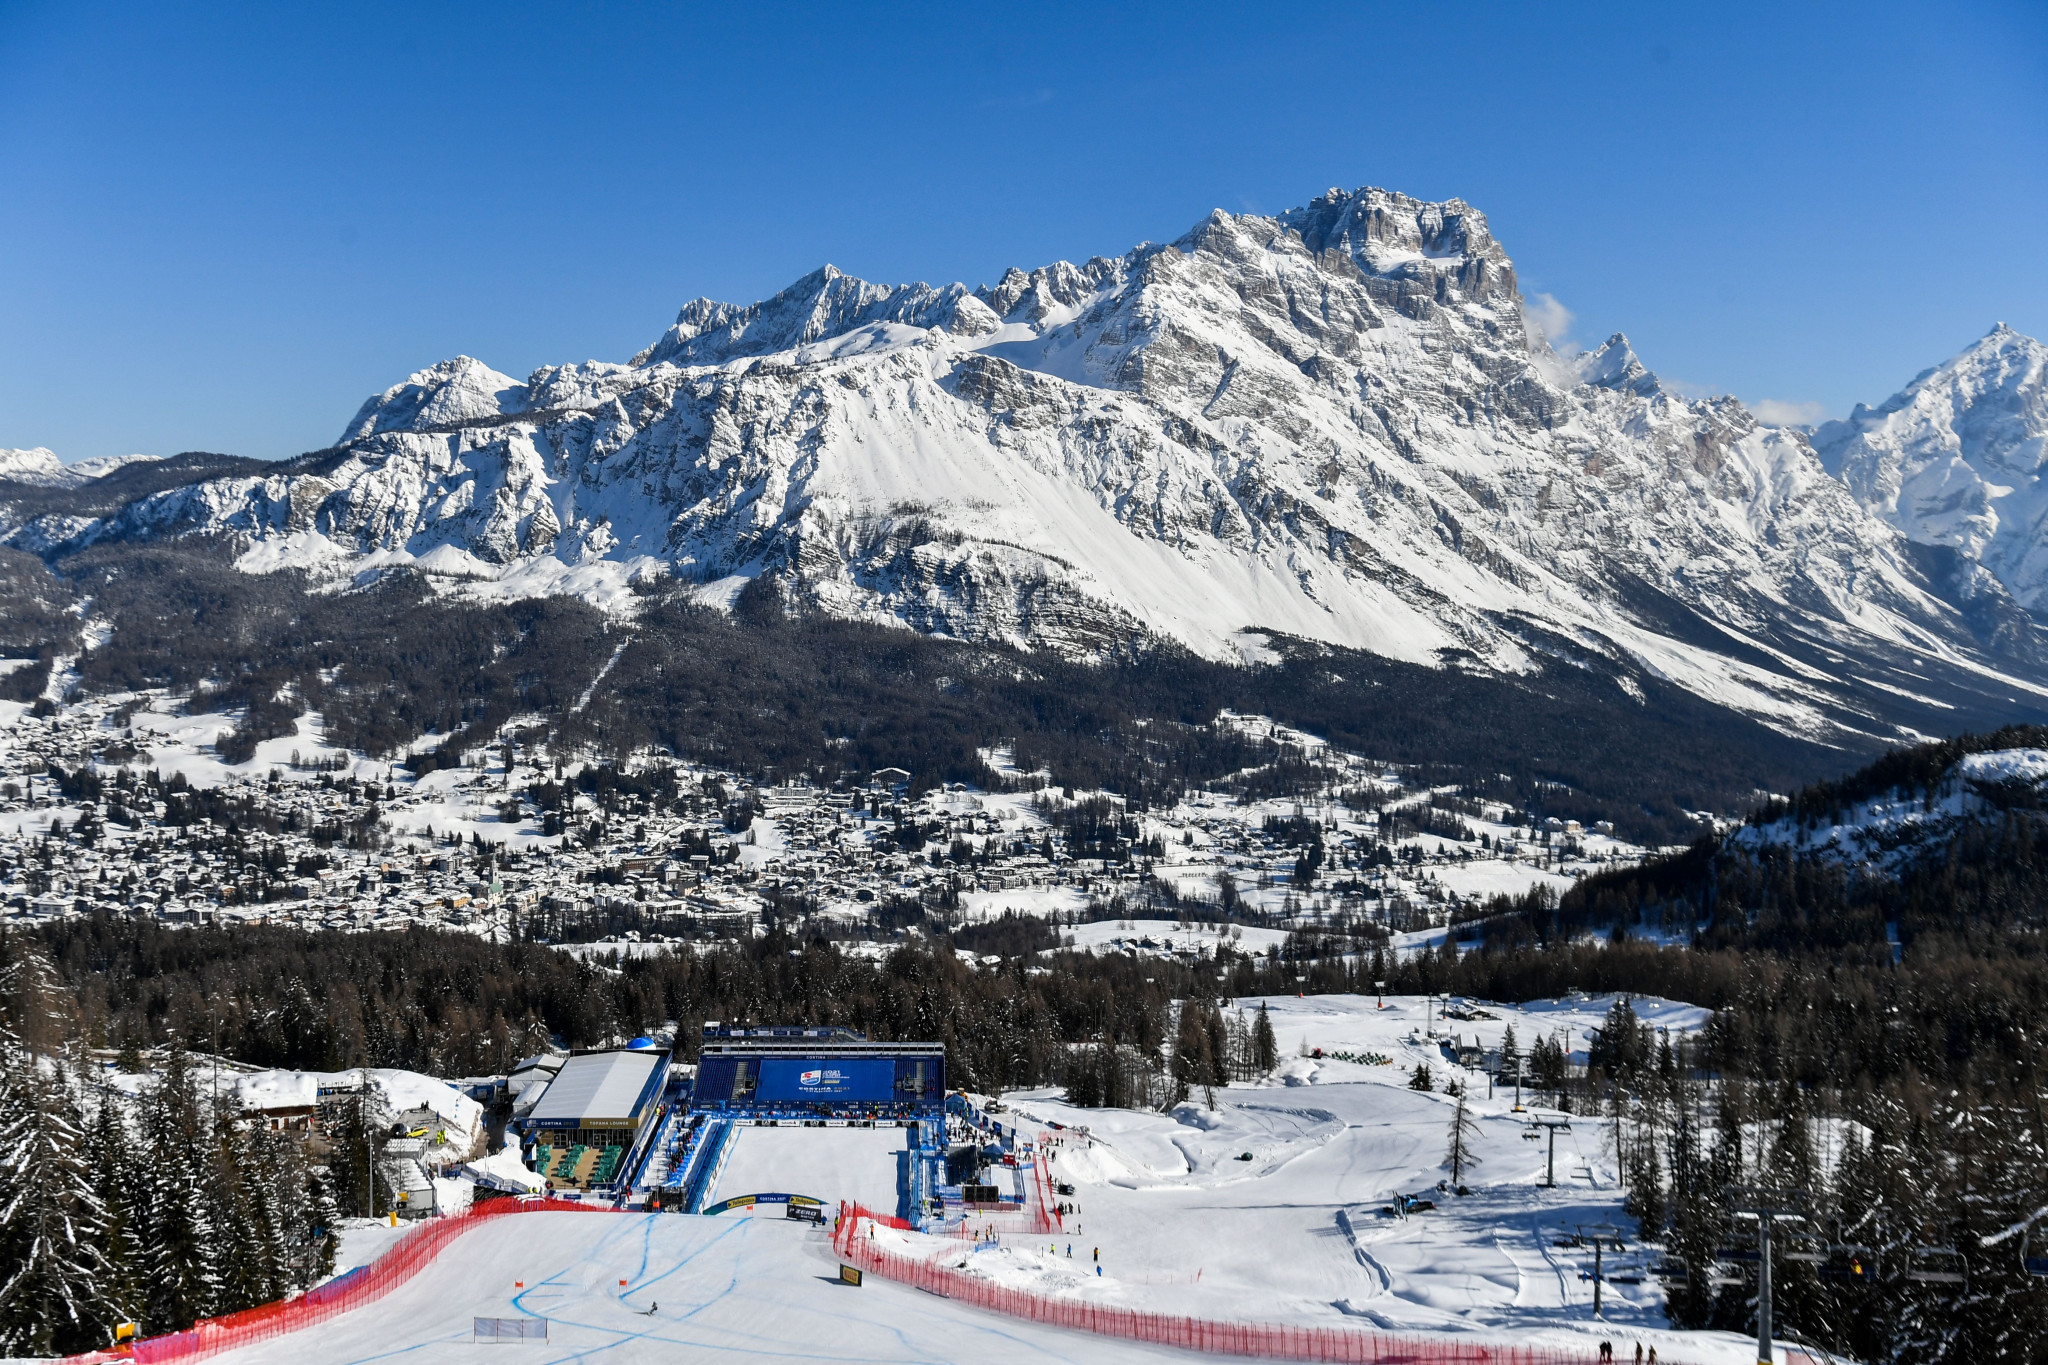 Courchevel-Méribel 2023 organisers are currently on an educational visit to the 2021 Alpine Ski World Championships in Cortina d'Ampezzo ©Getty Images